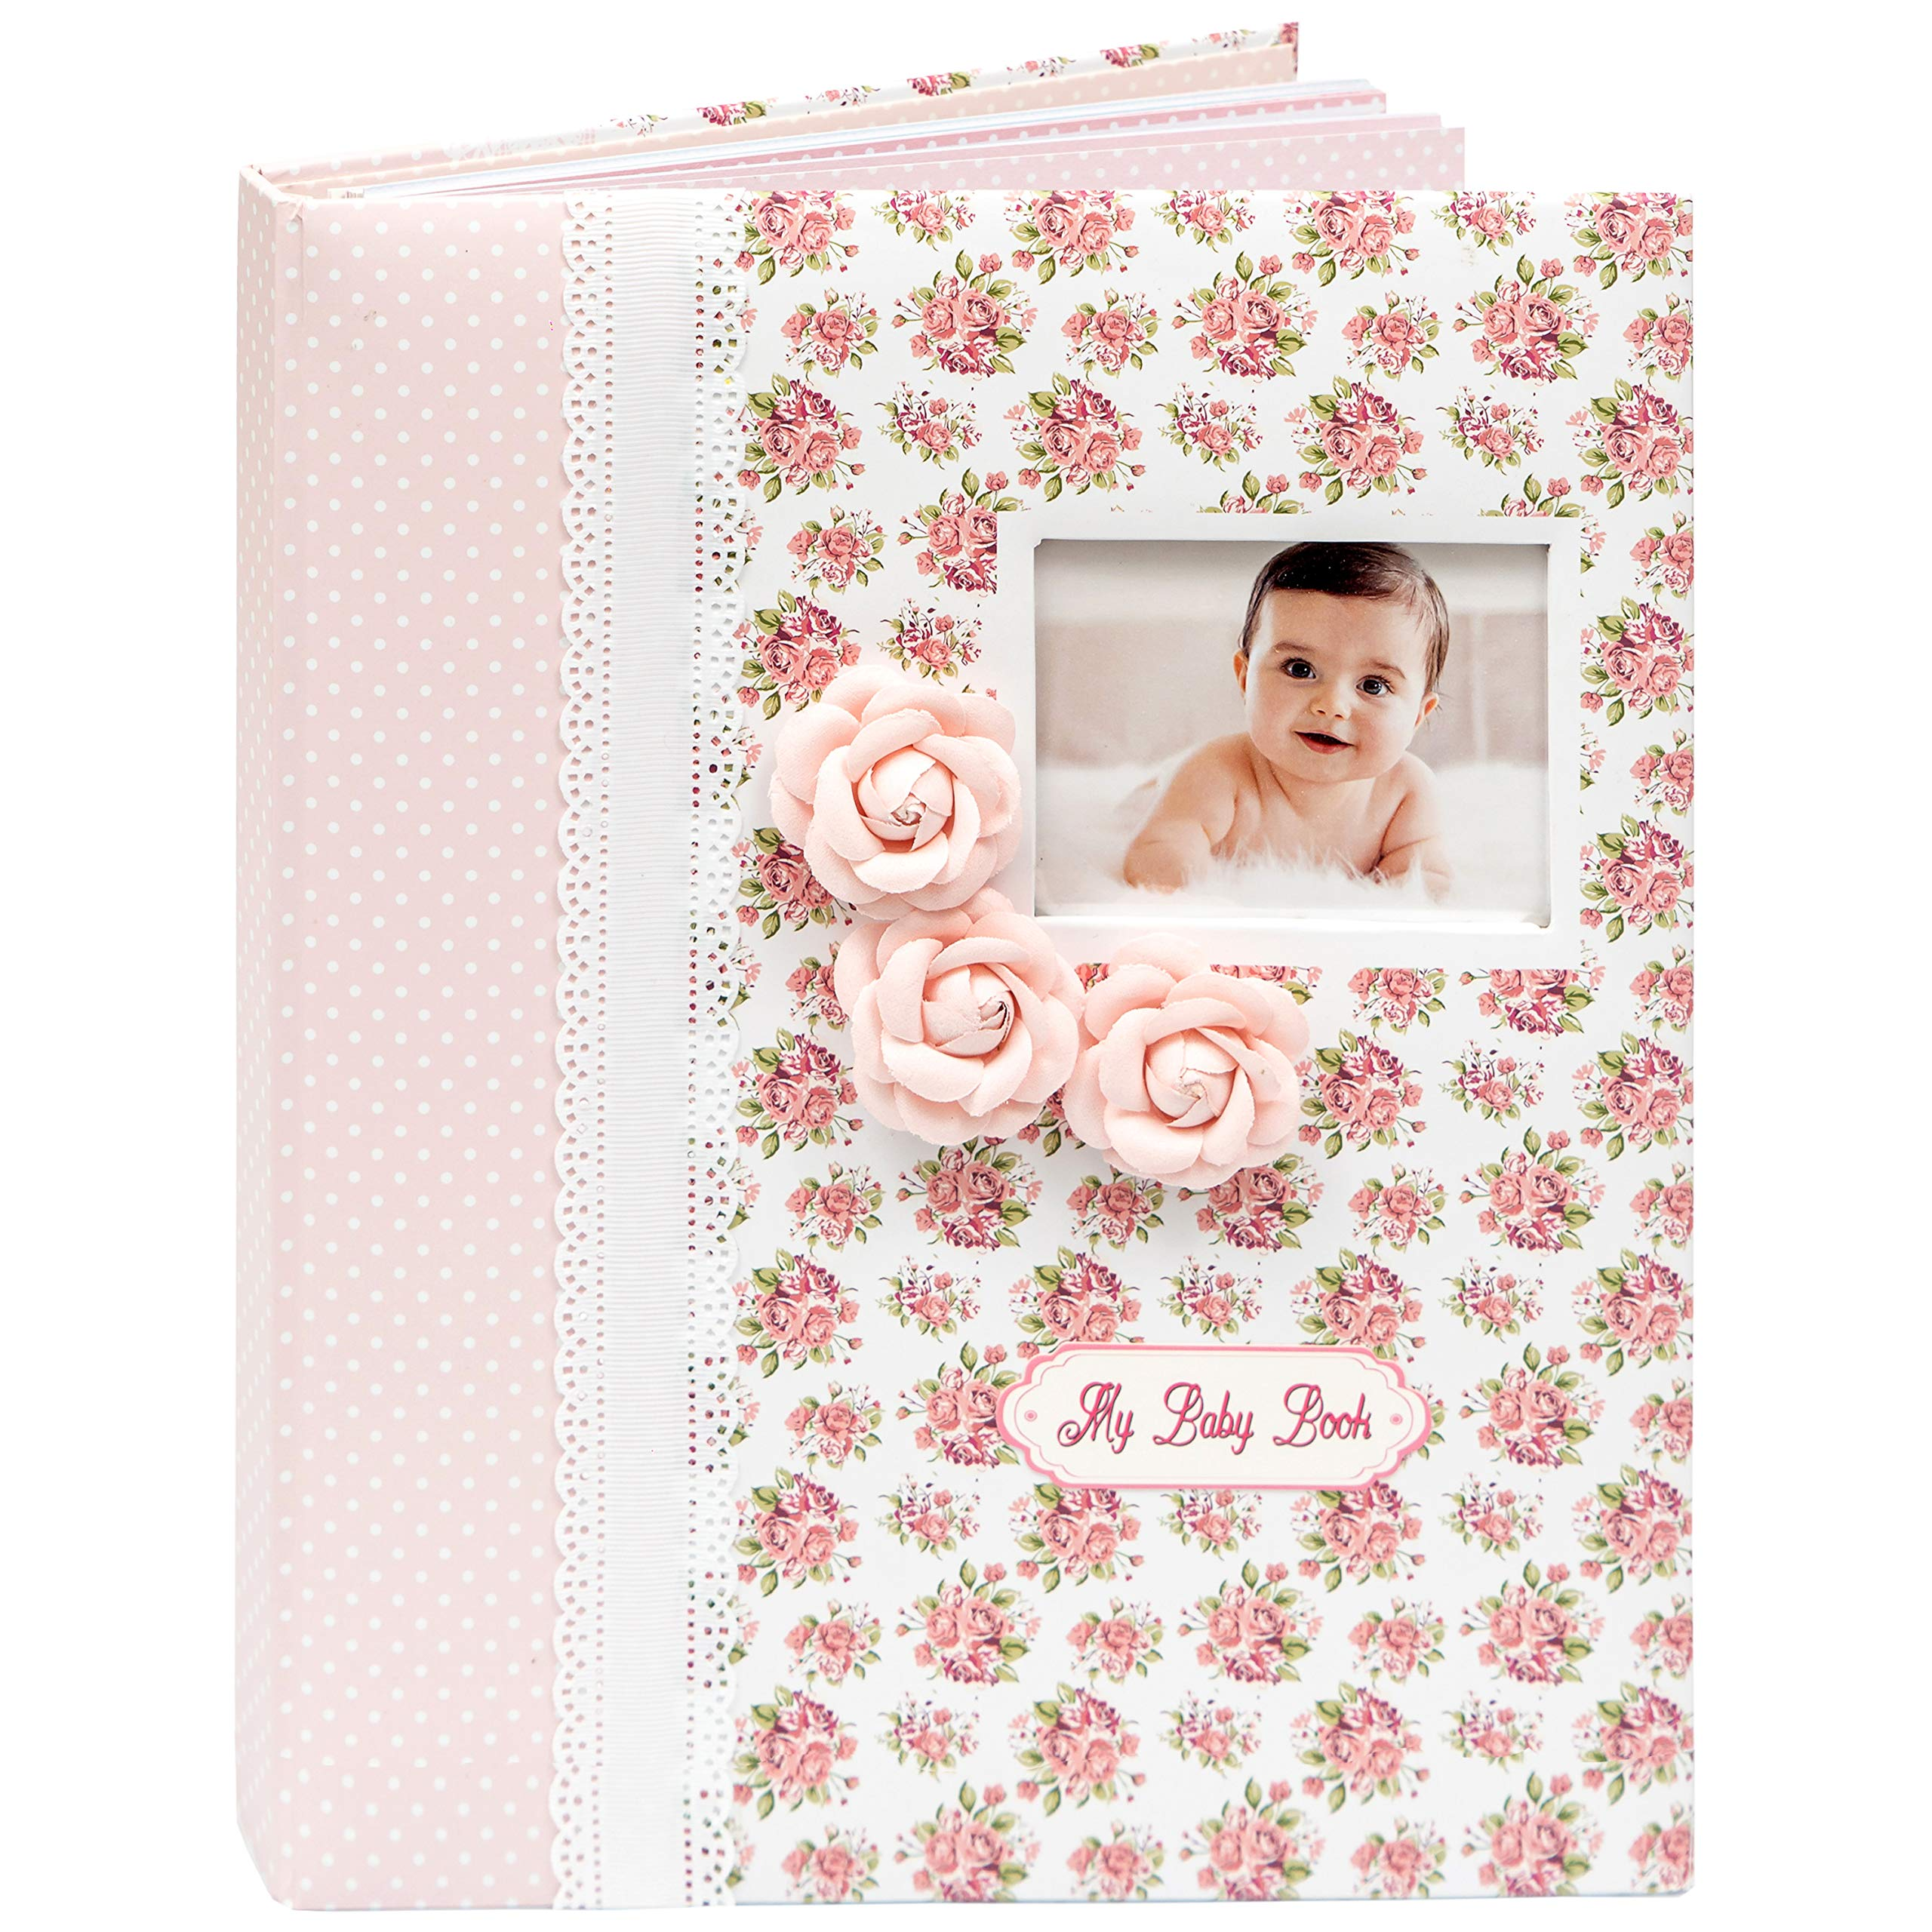 Baby Girl Memory Book First 5 Years, Pink Floral Milestone Journal w. Stickers & Keepsake Box, Great Baby Shower Gift